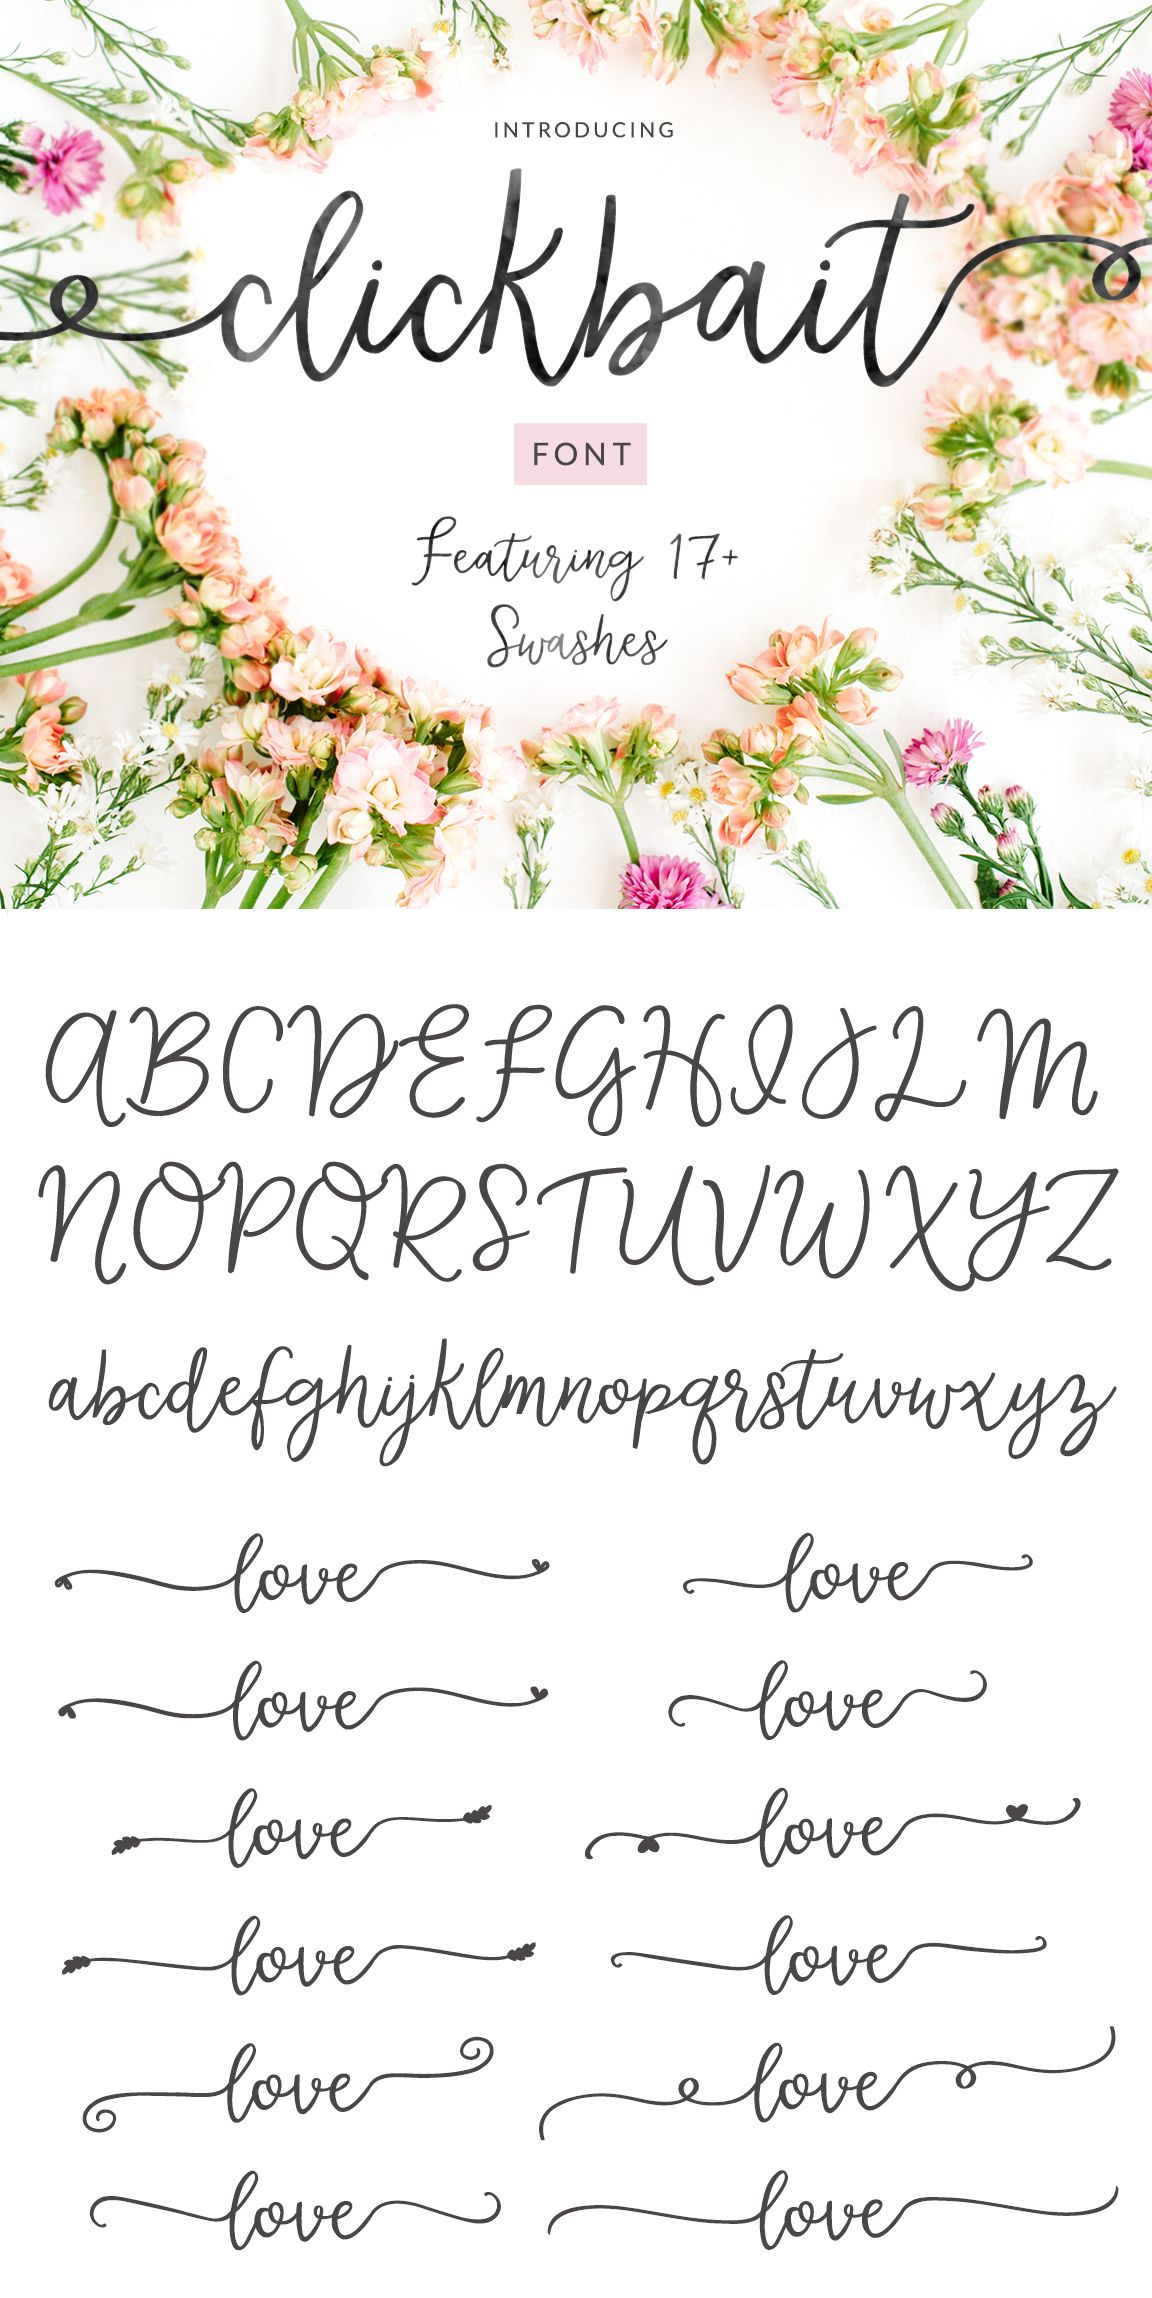 Clickbait Cute Swash Calligraphy Font Full Version Calligraphy